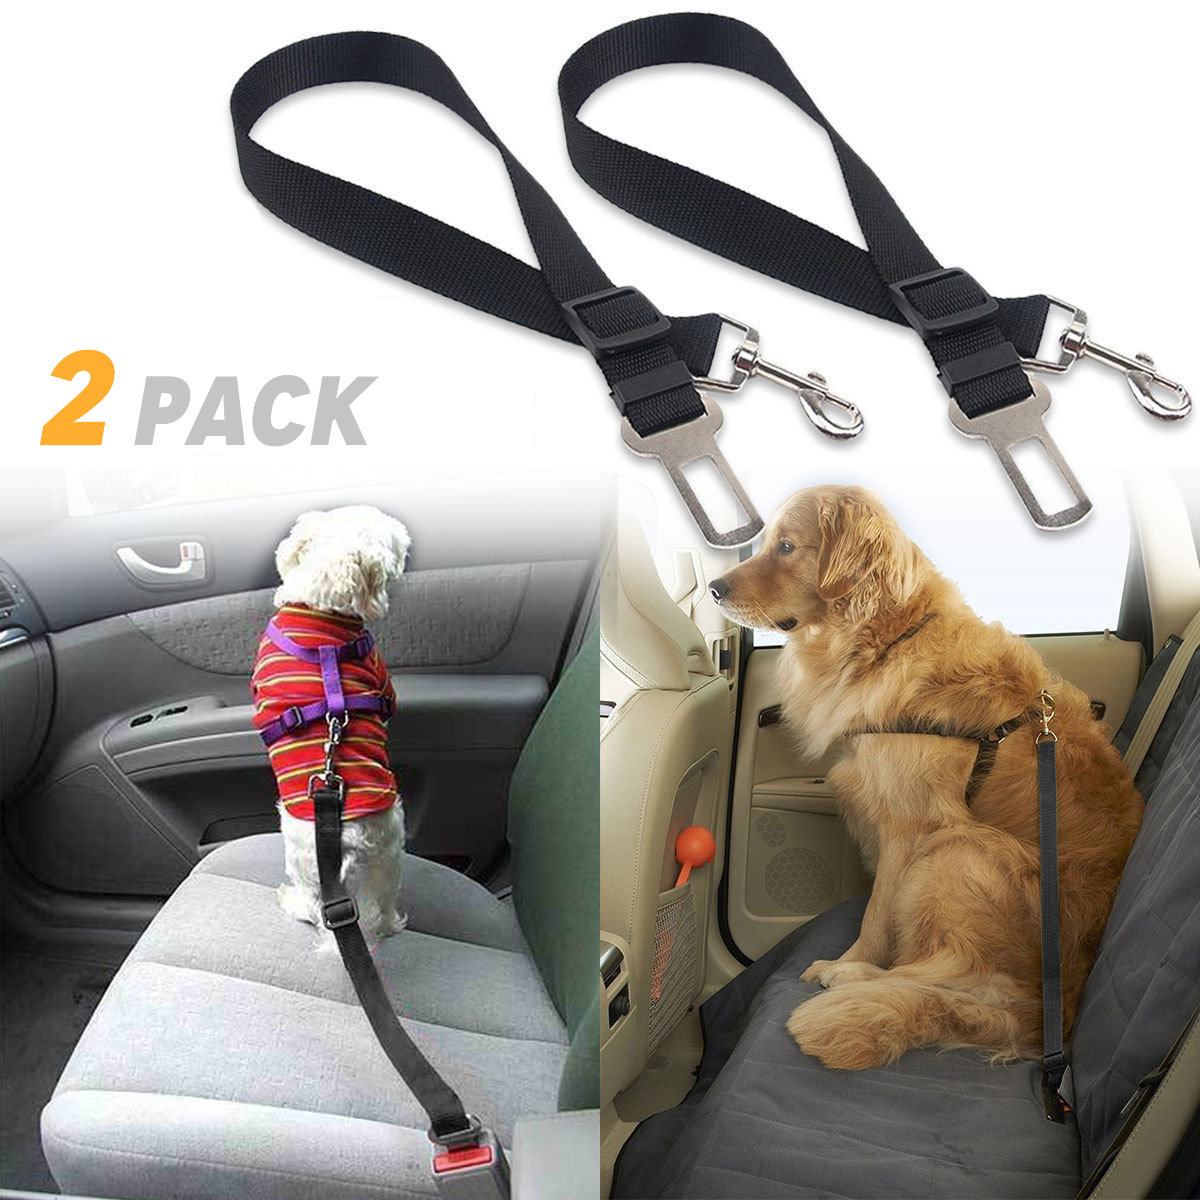 TSV 2 Packs Adjustable Pet Dog Cat Car Seat Belt Safety Leads Vehicle Seatbelt Harness, Made from Nylon Fabric